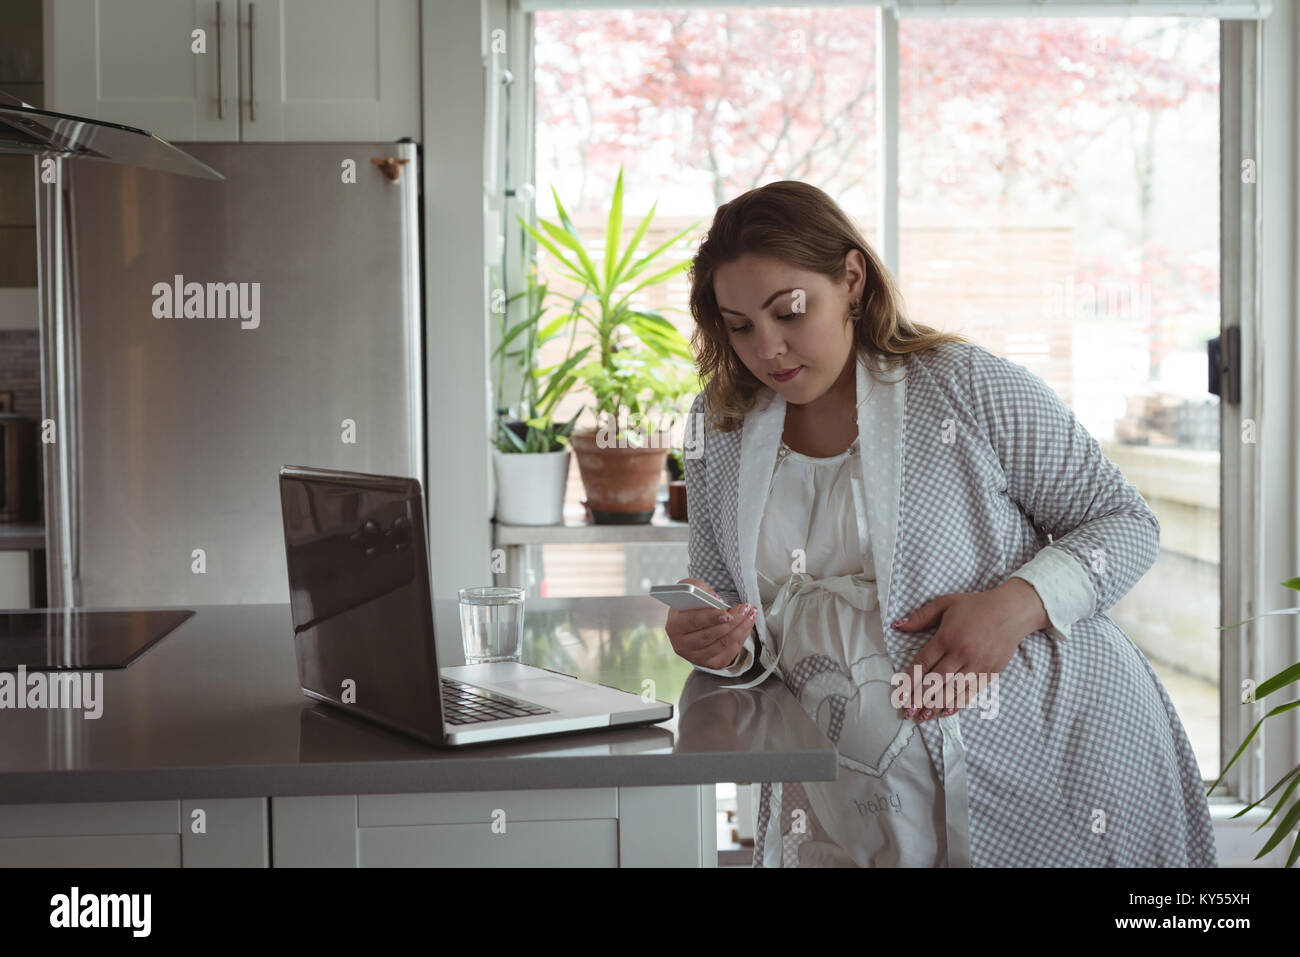 Pregnant woman using mobile phone - Stock Image